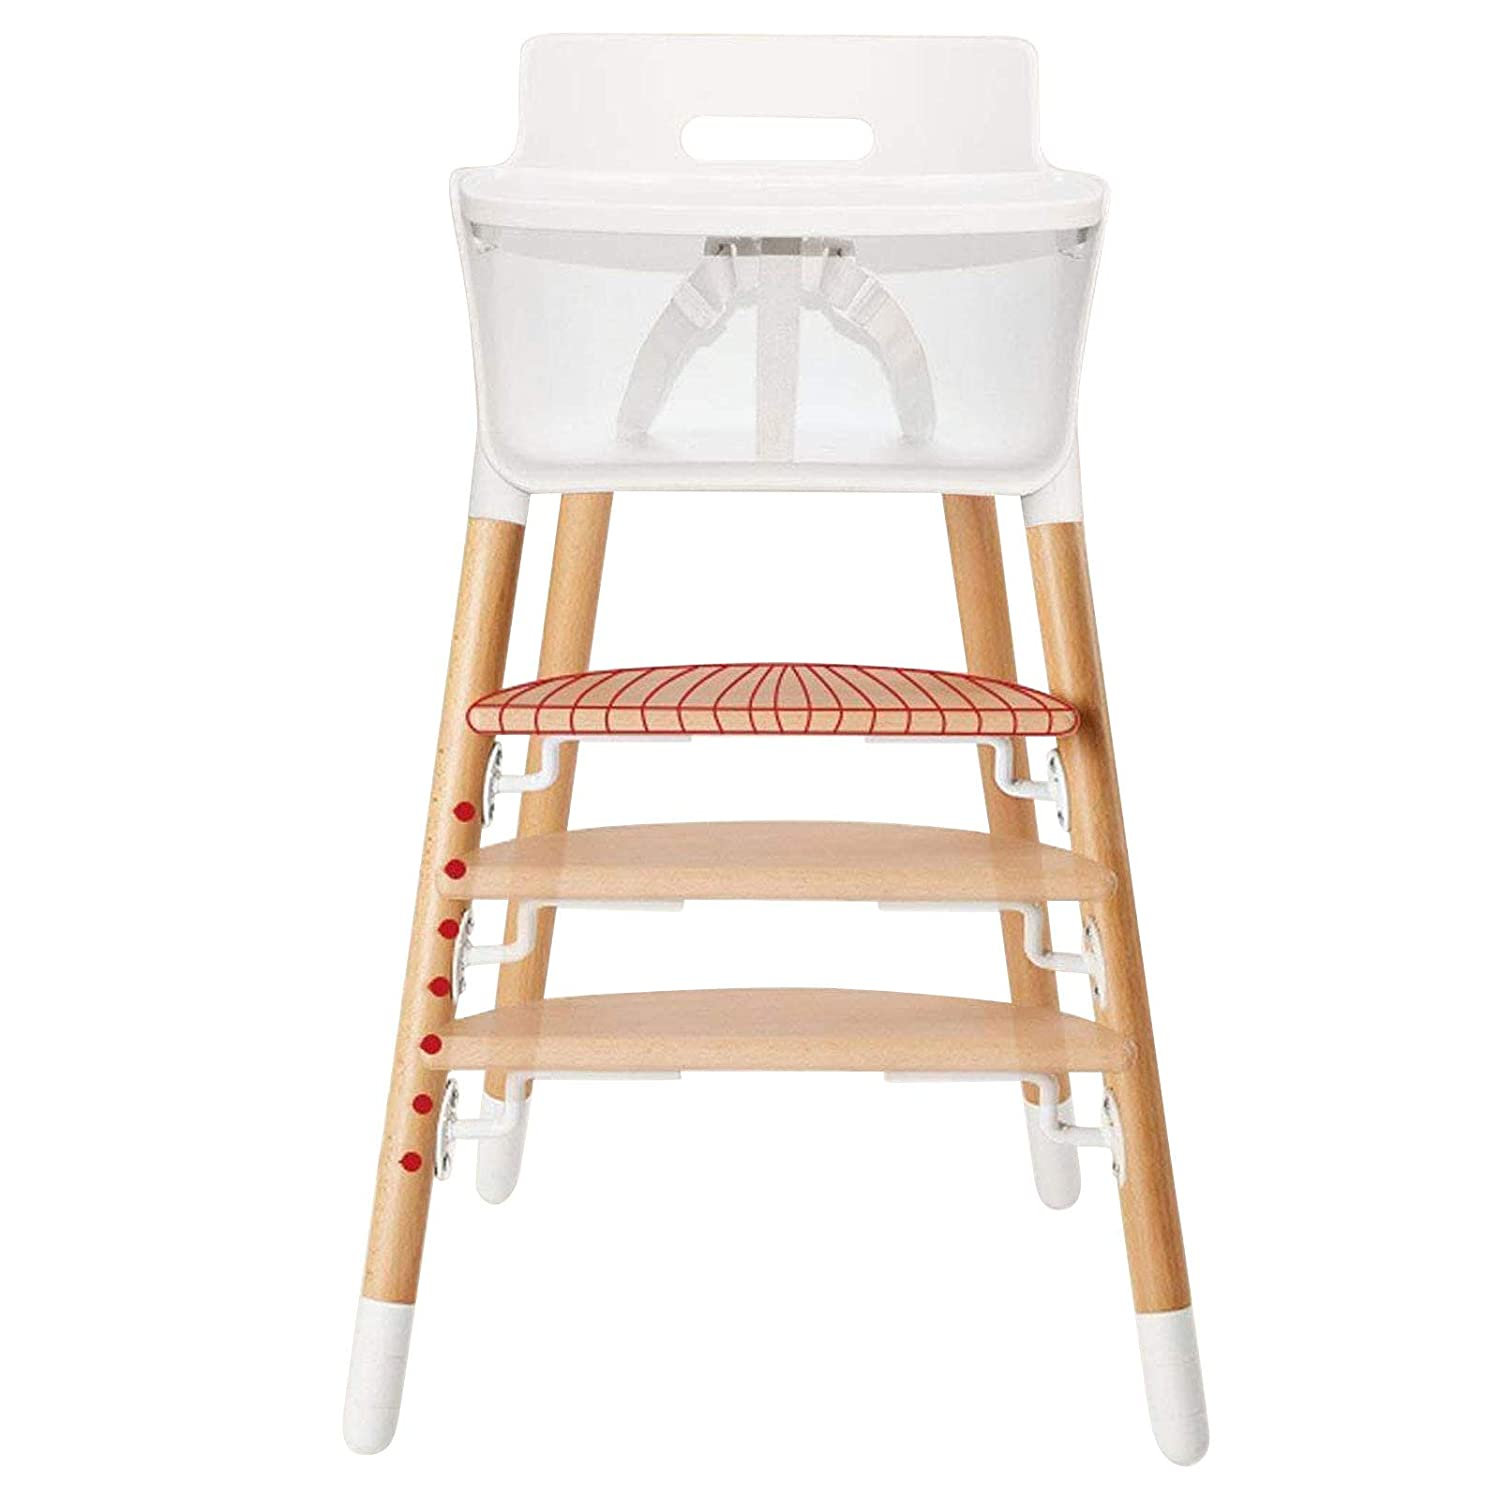 High Chair Modern High Chairs for Babies and Toddlers Wooden Dining Table Chair Adjustable Feeding Solution with Tray, Easy Care Baby Chair in White